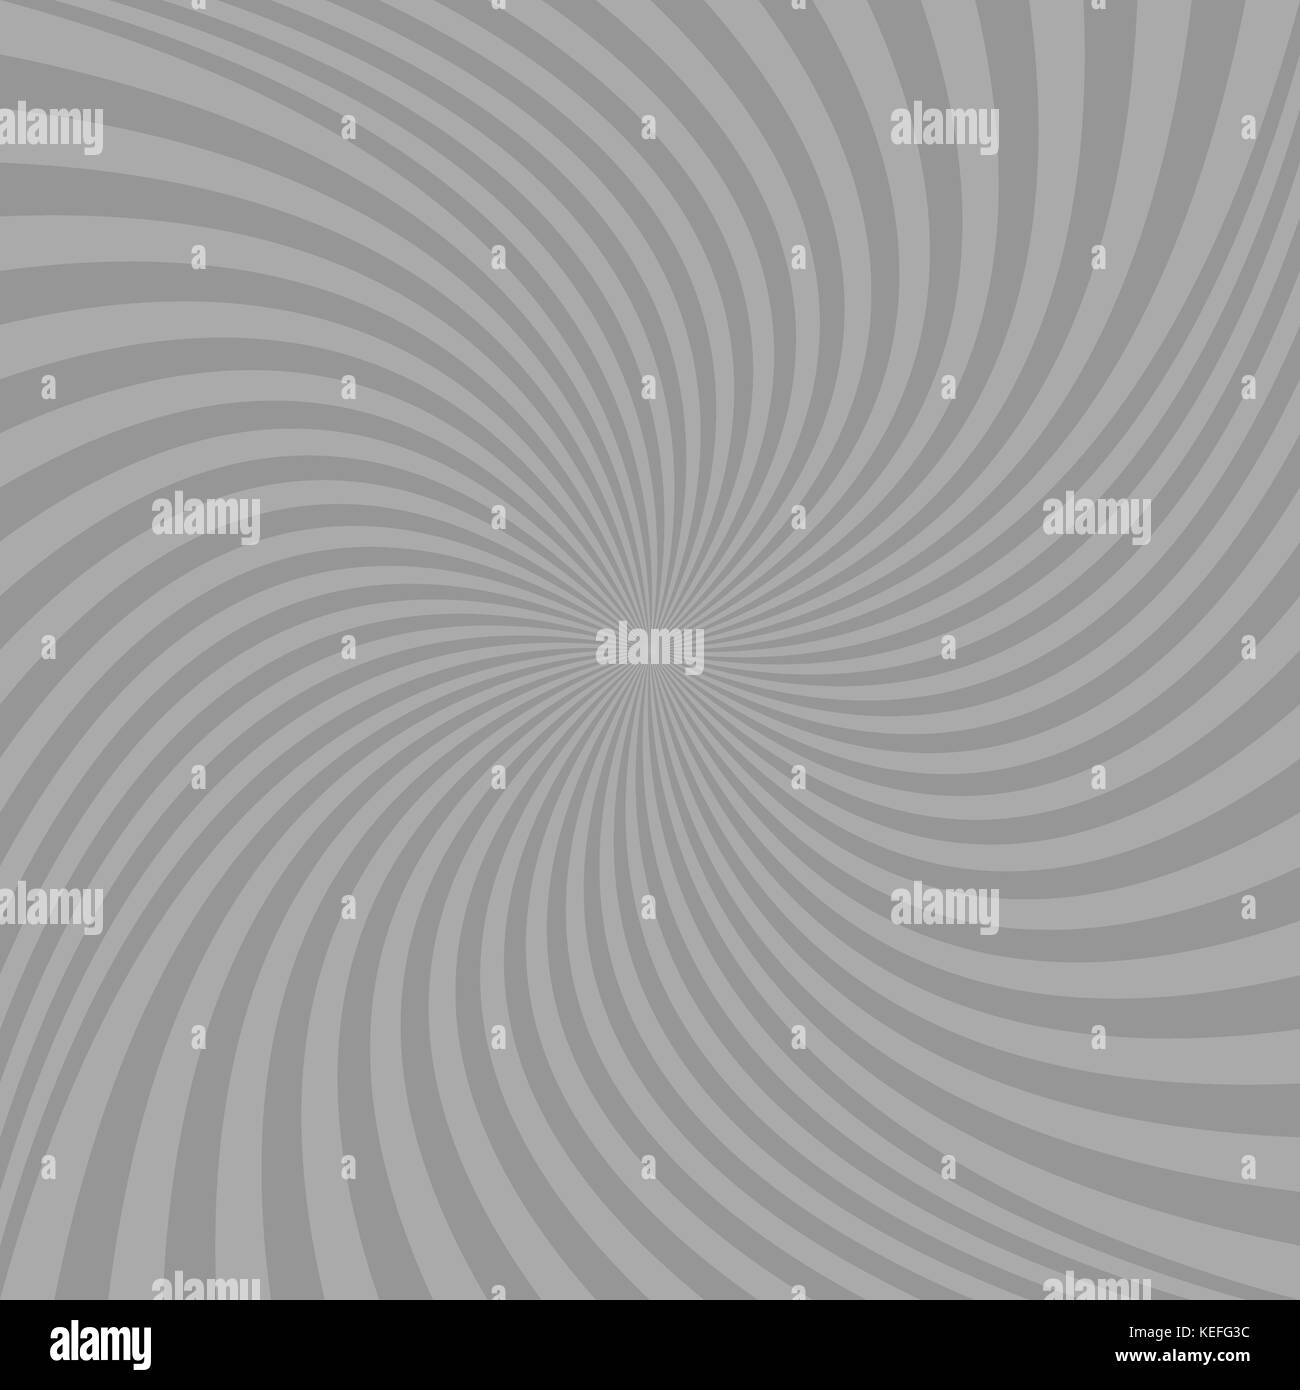 Abstract vector spiral background - Stock Image